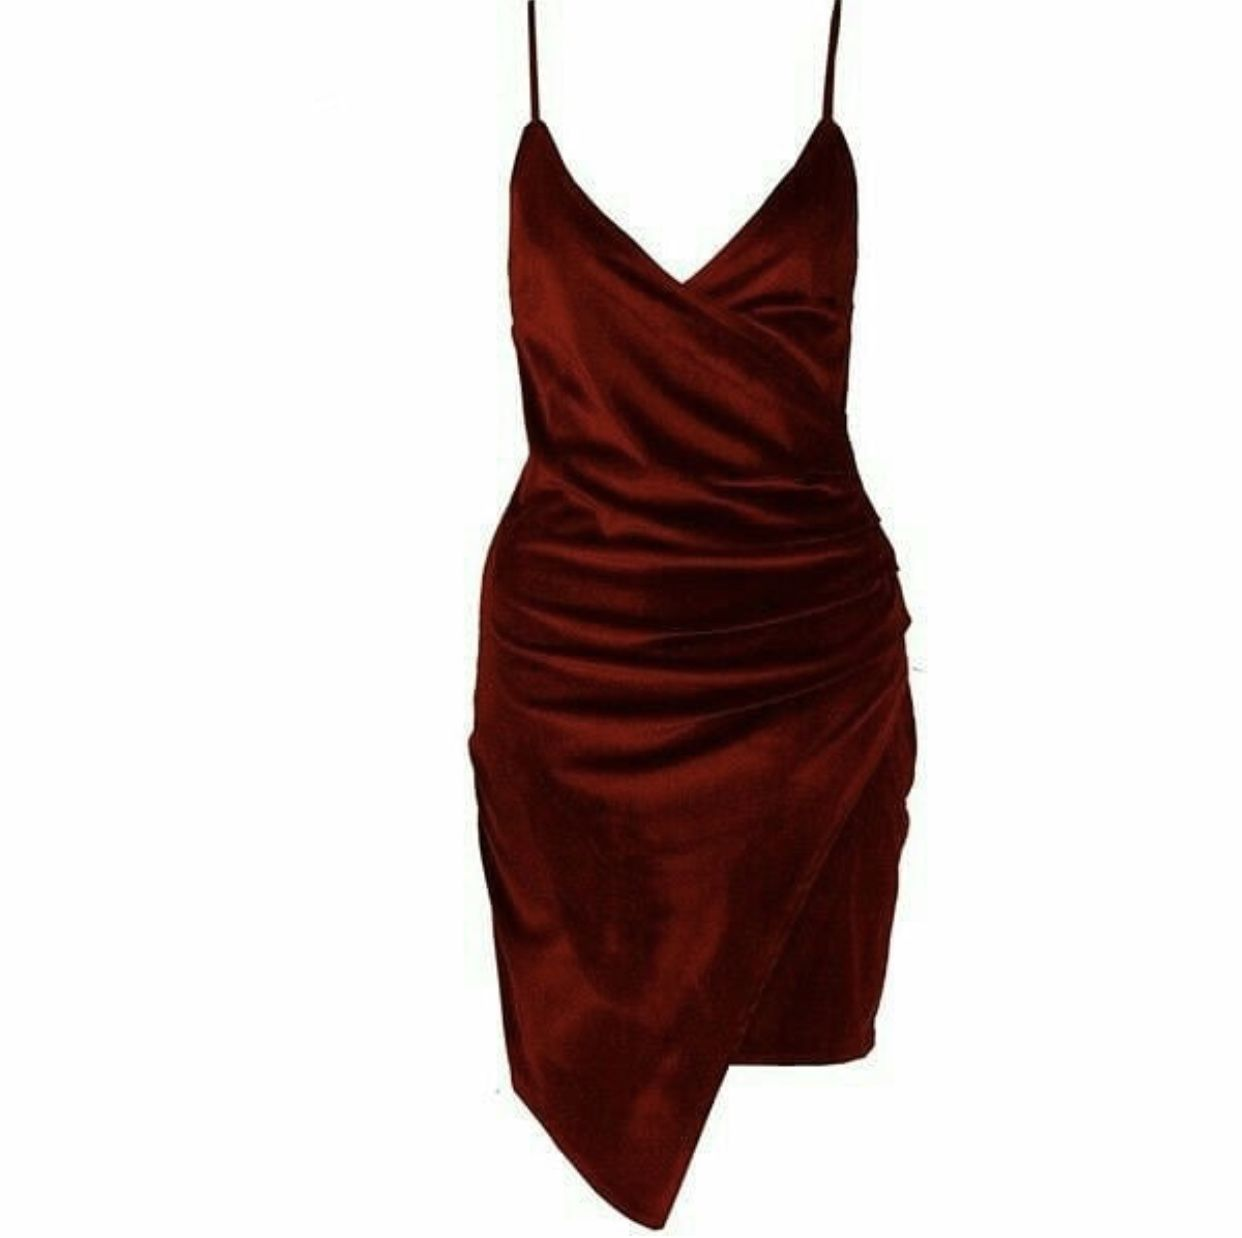 be08d16fb9e Shape Burgundy Satin Wrap Dress ( 38) ❤ liked on Polyvore featuring dresses